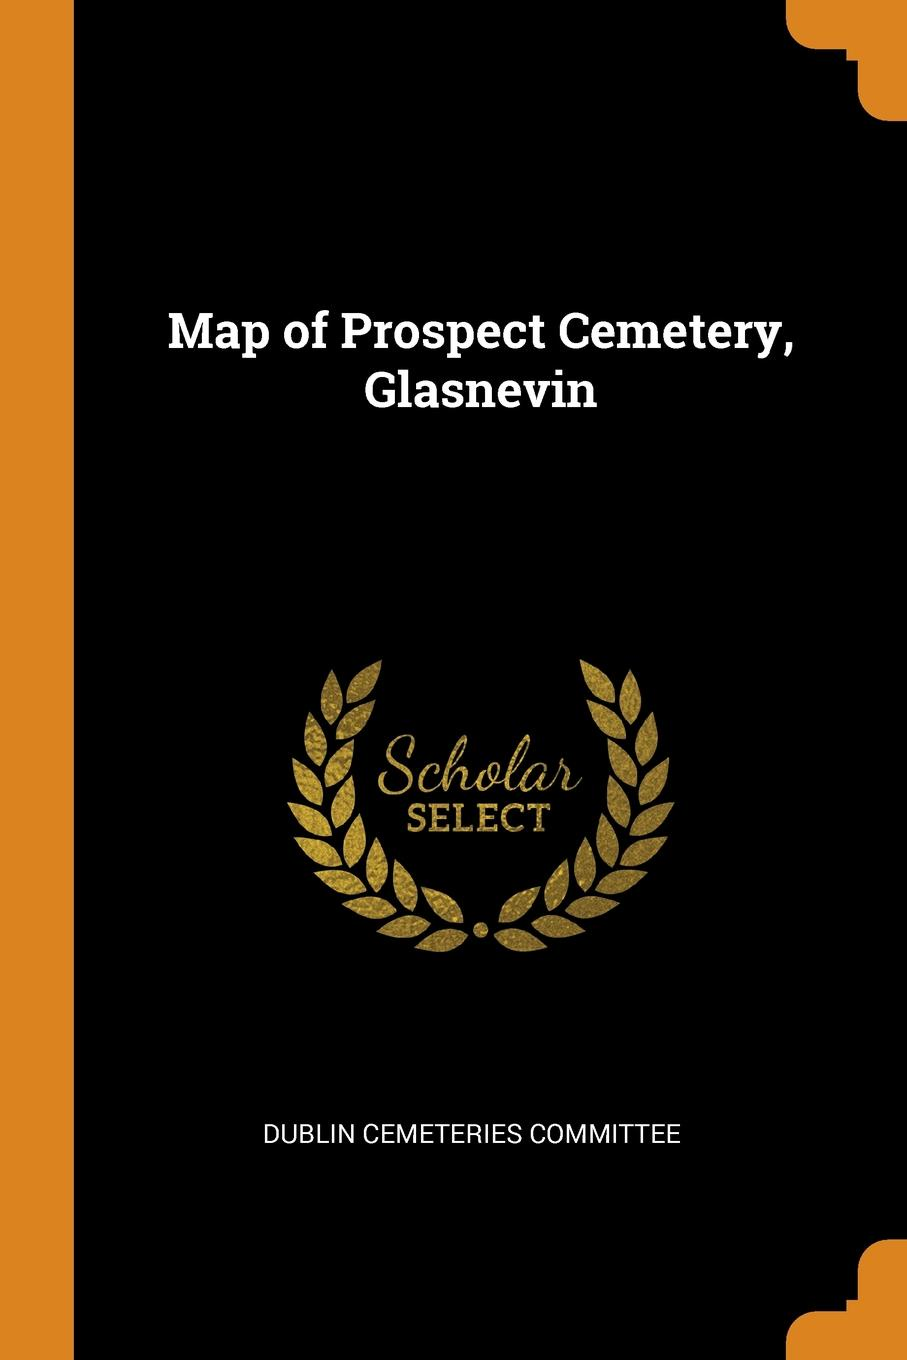 Map of Prospect Cemetery, Glasnevin